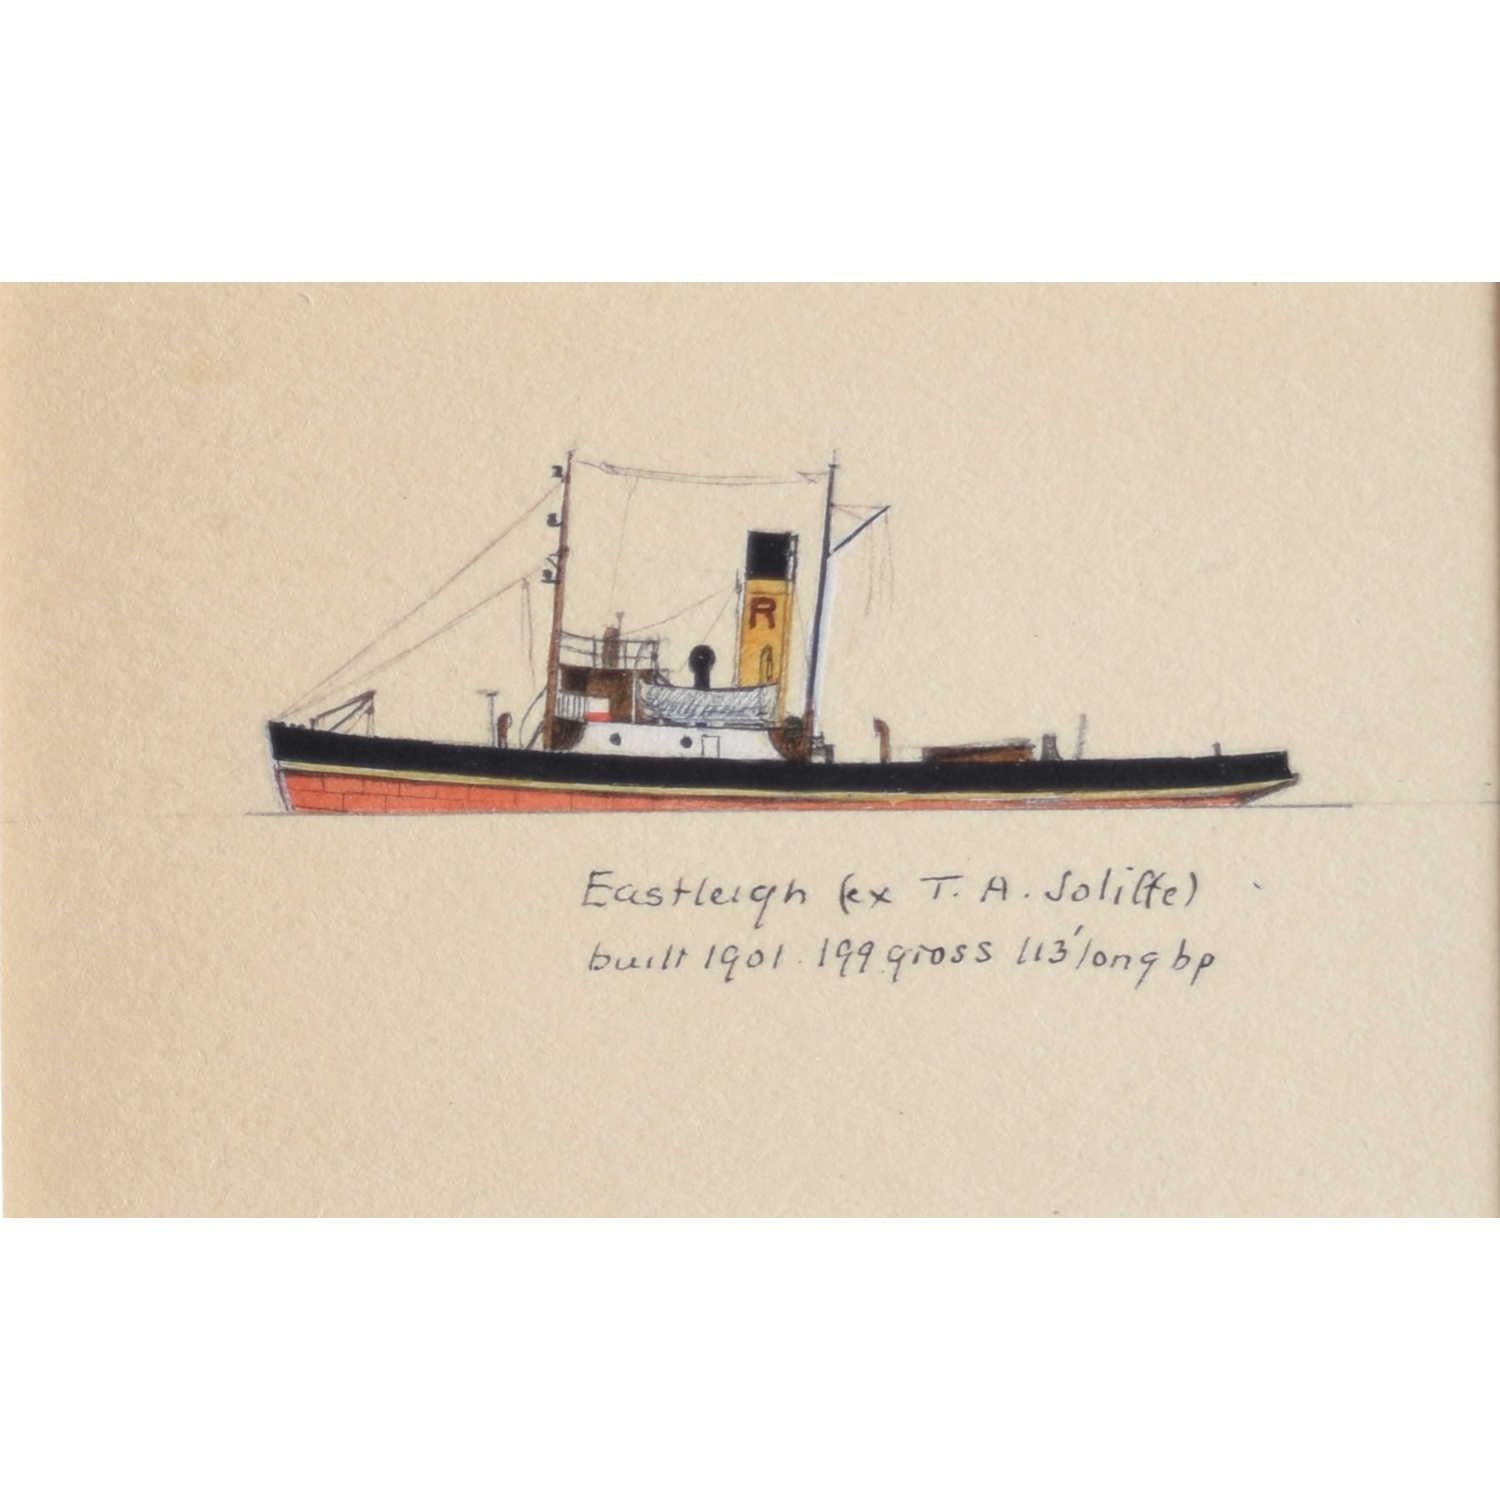 Laurence Dunn, Drawing of Coastal Tramp Eastleigh, Kent (c.1925) T A Soliffe